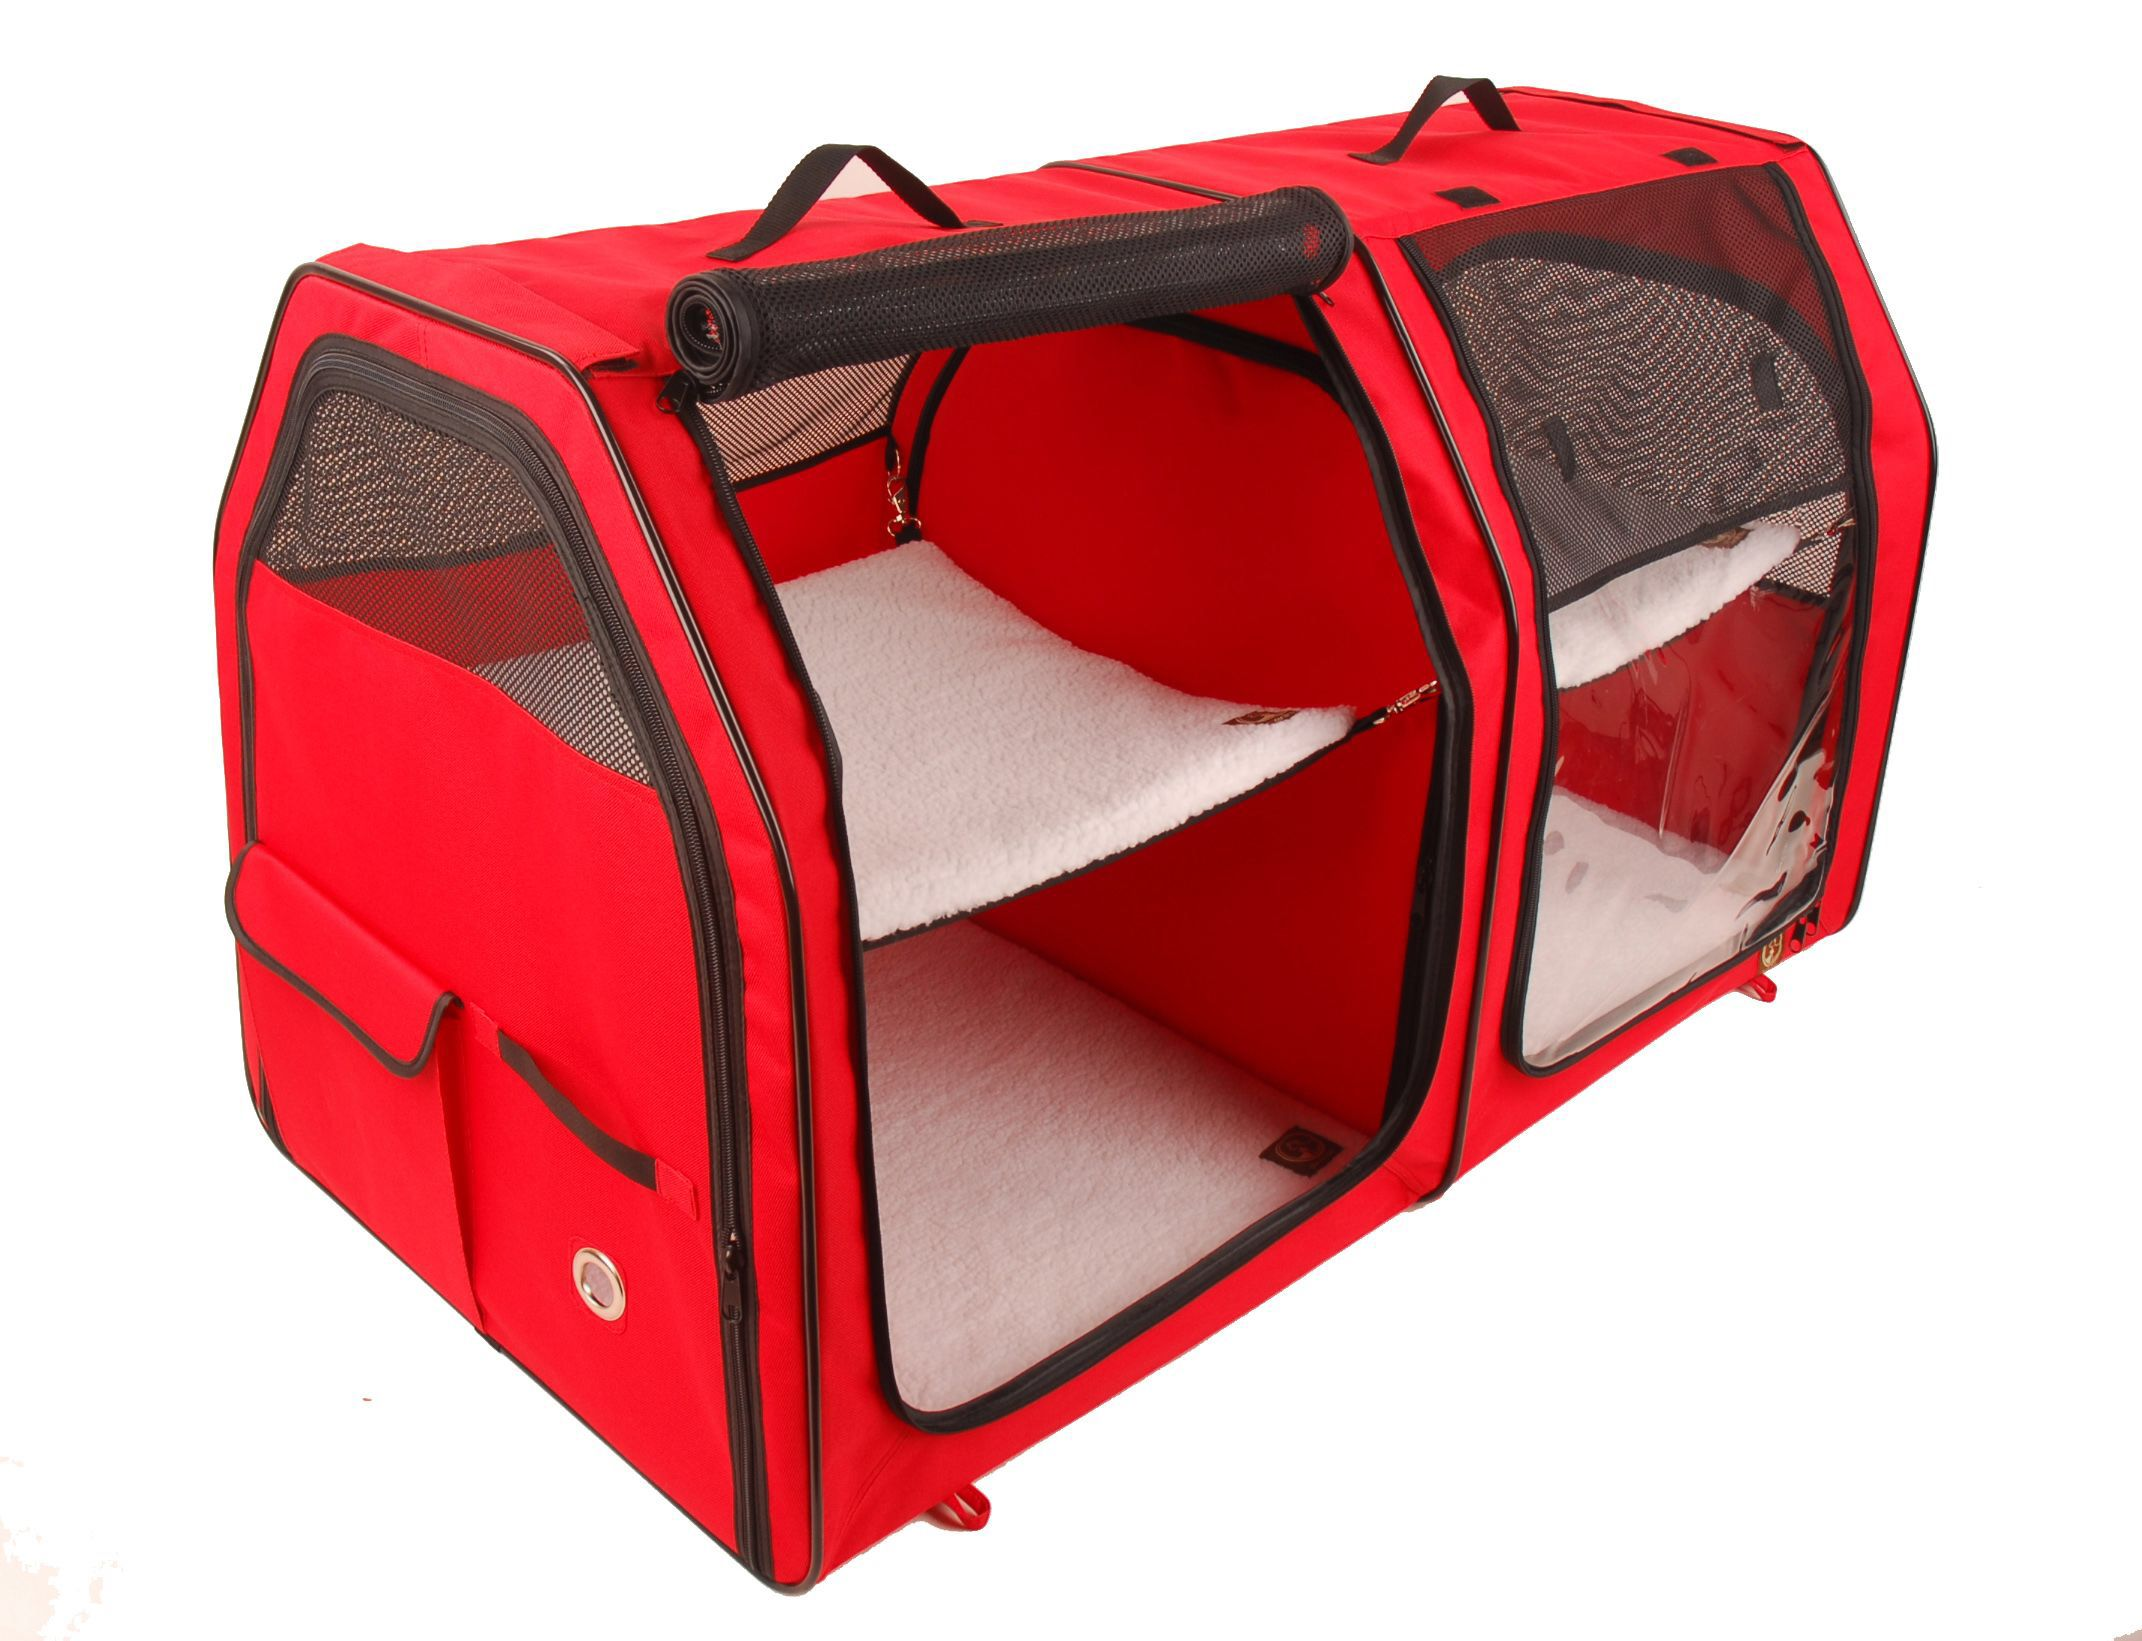 Oneforpets Show House Cat Carrier Portable Dog Kennels Cat Carrier Outdoor Cat House